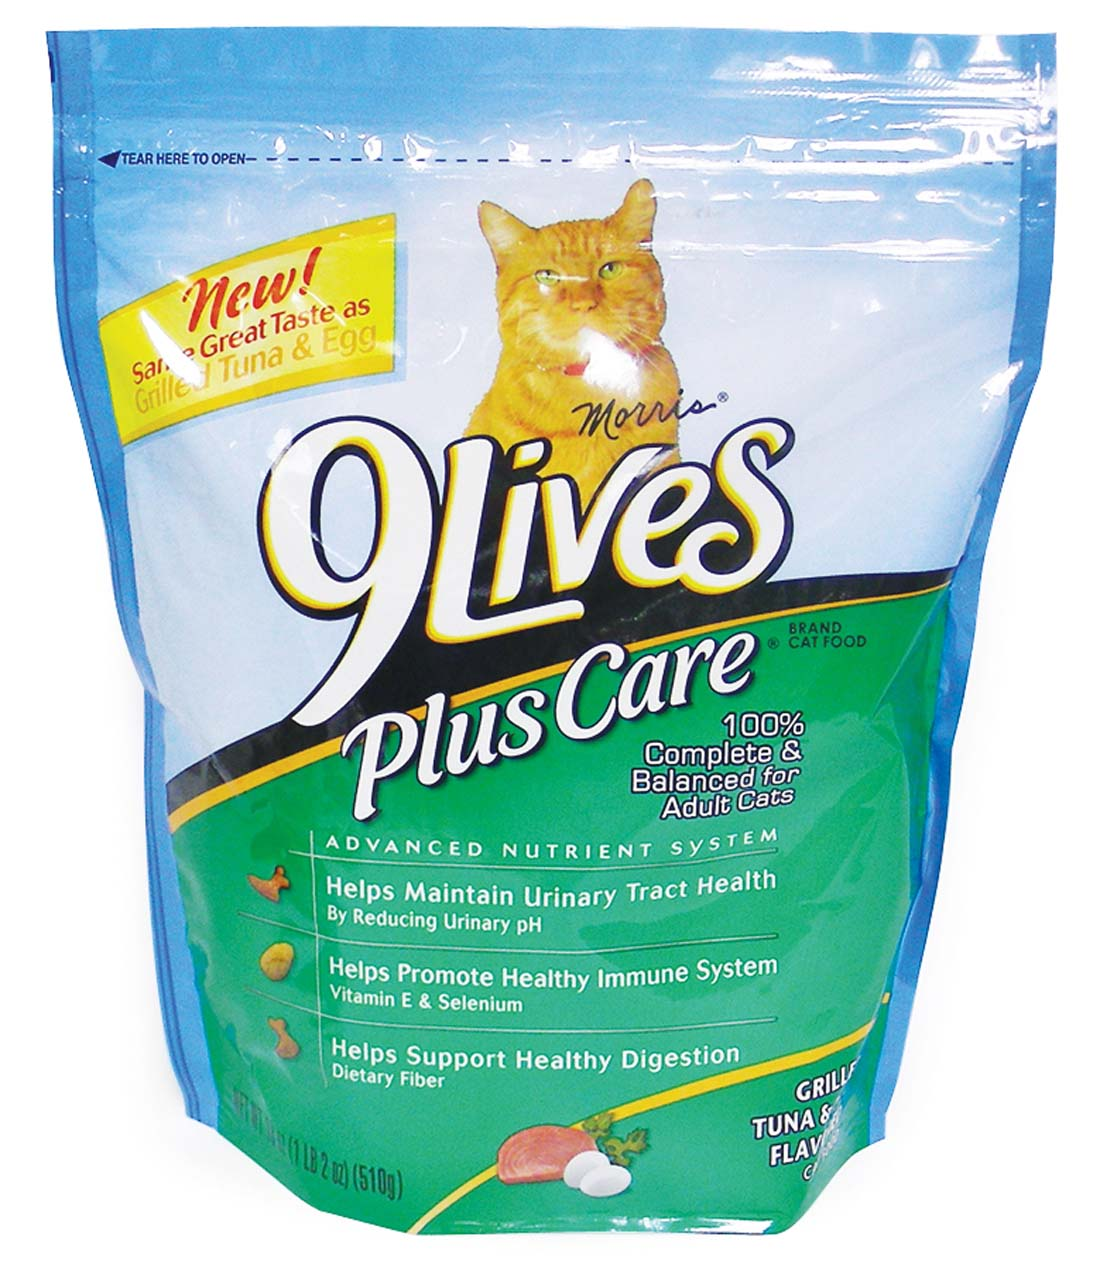 View 9 LIVES DRY CAT FOOD 18 OZ PLUS CARE TUNA & EGG